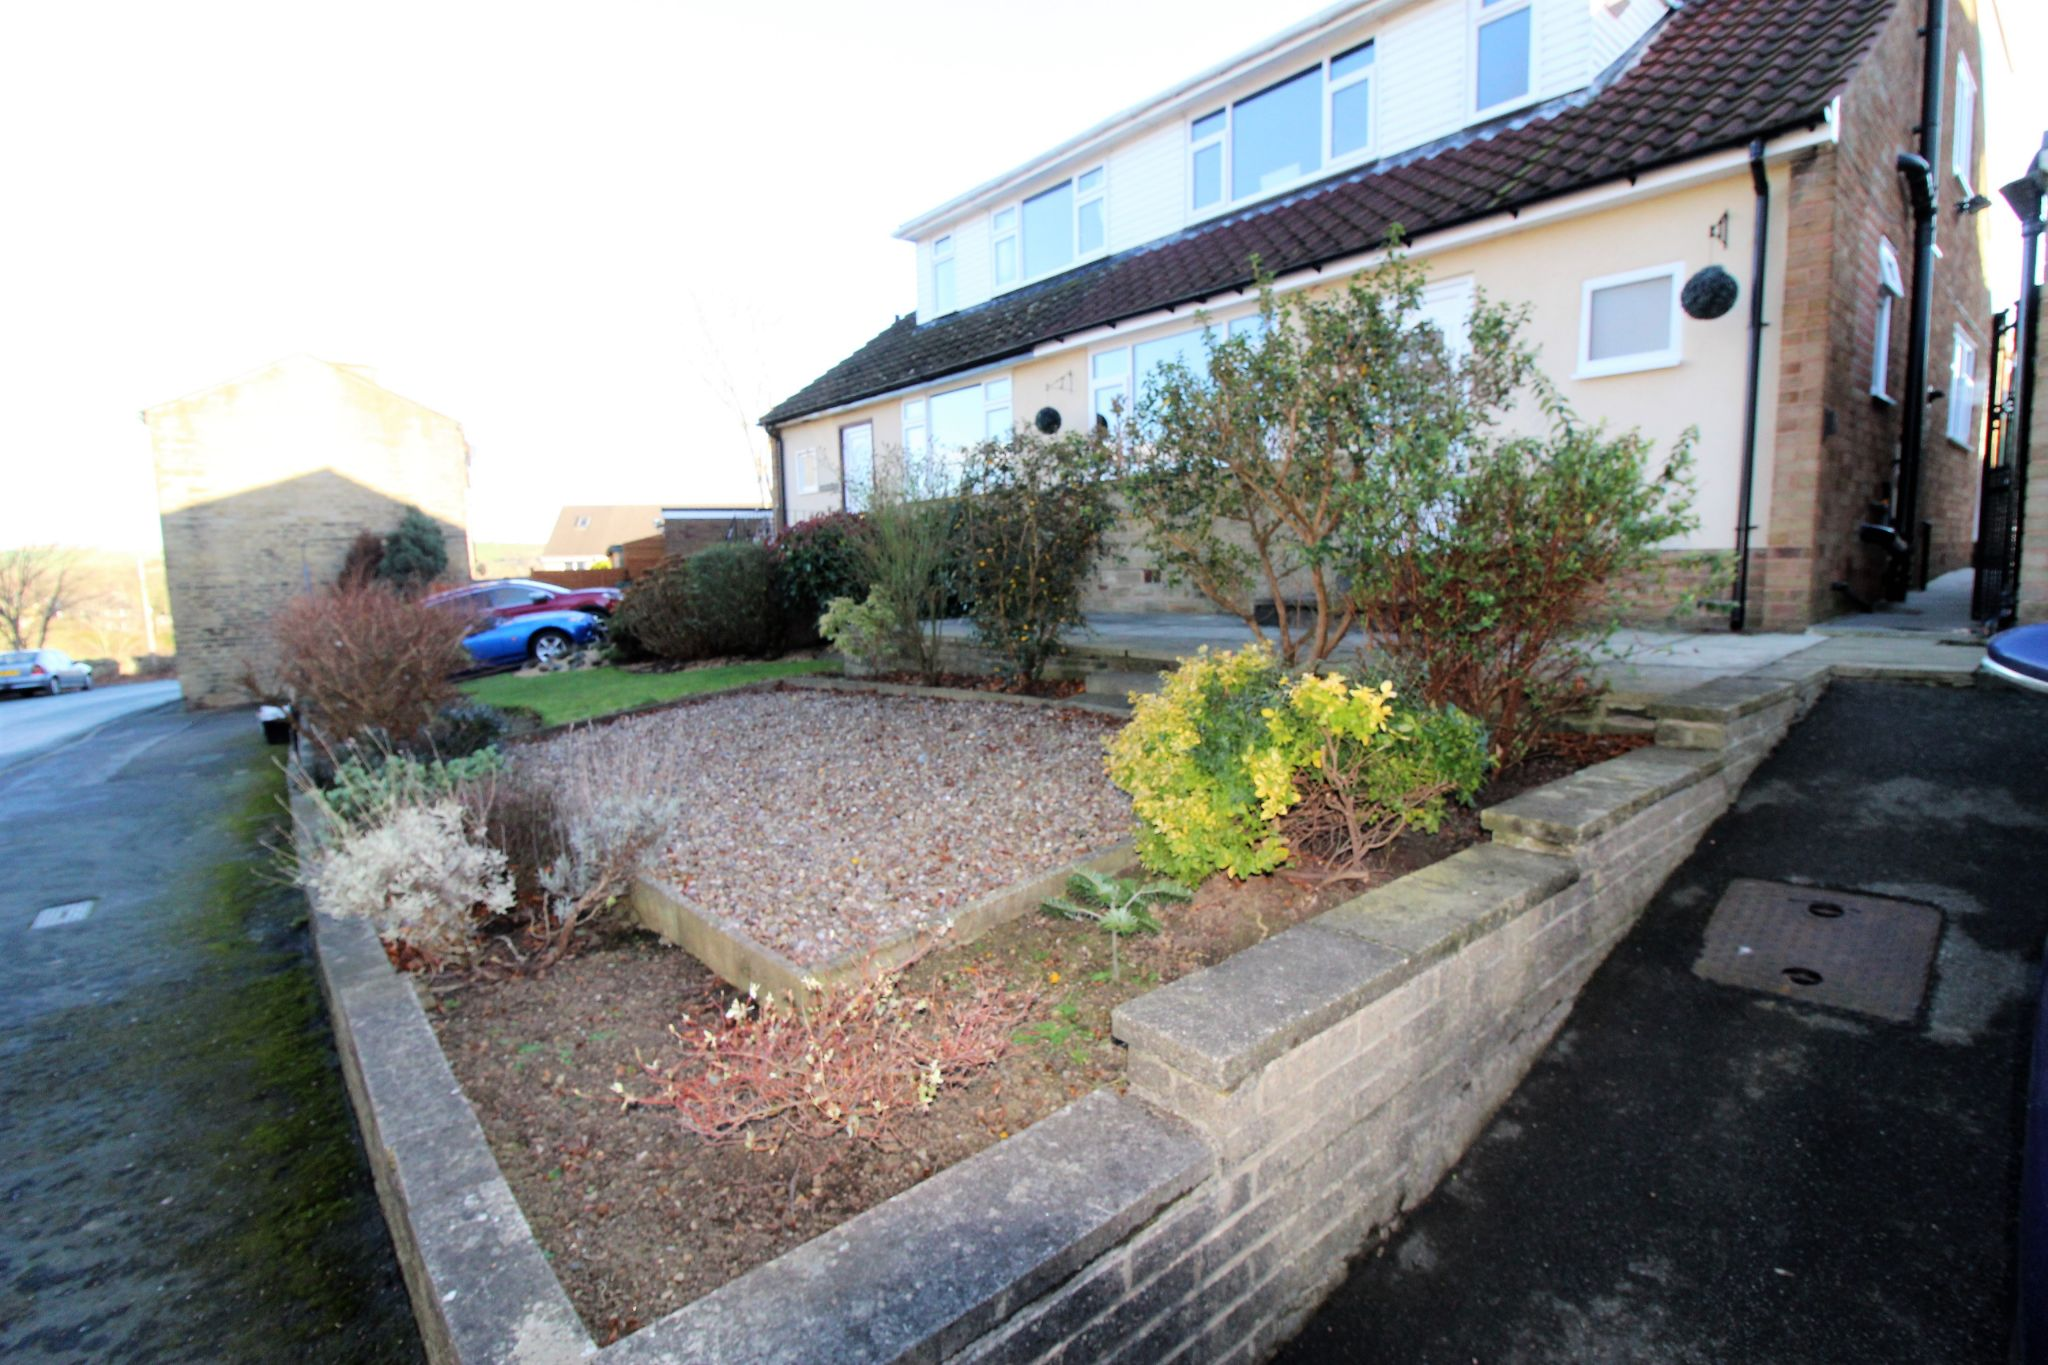 4 bedroom semi-detached bungalow SSTC in Brighouse - Front garden